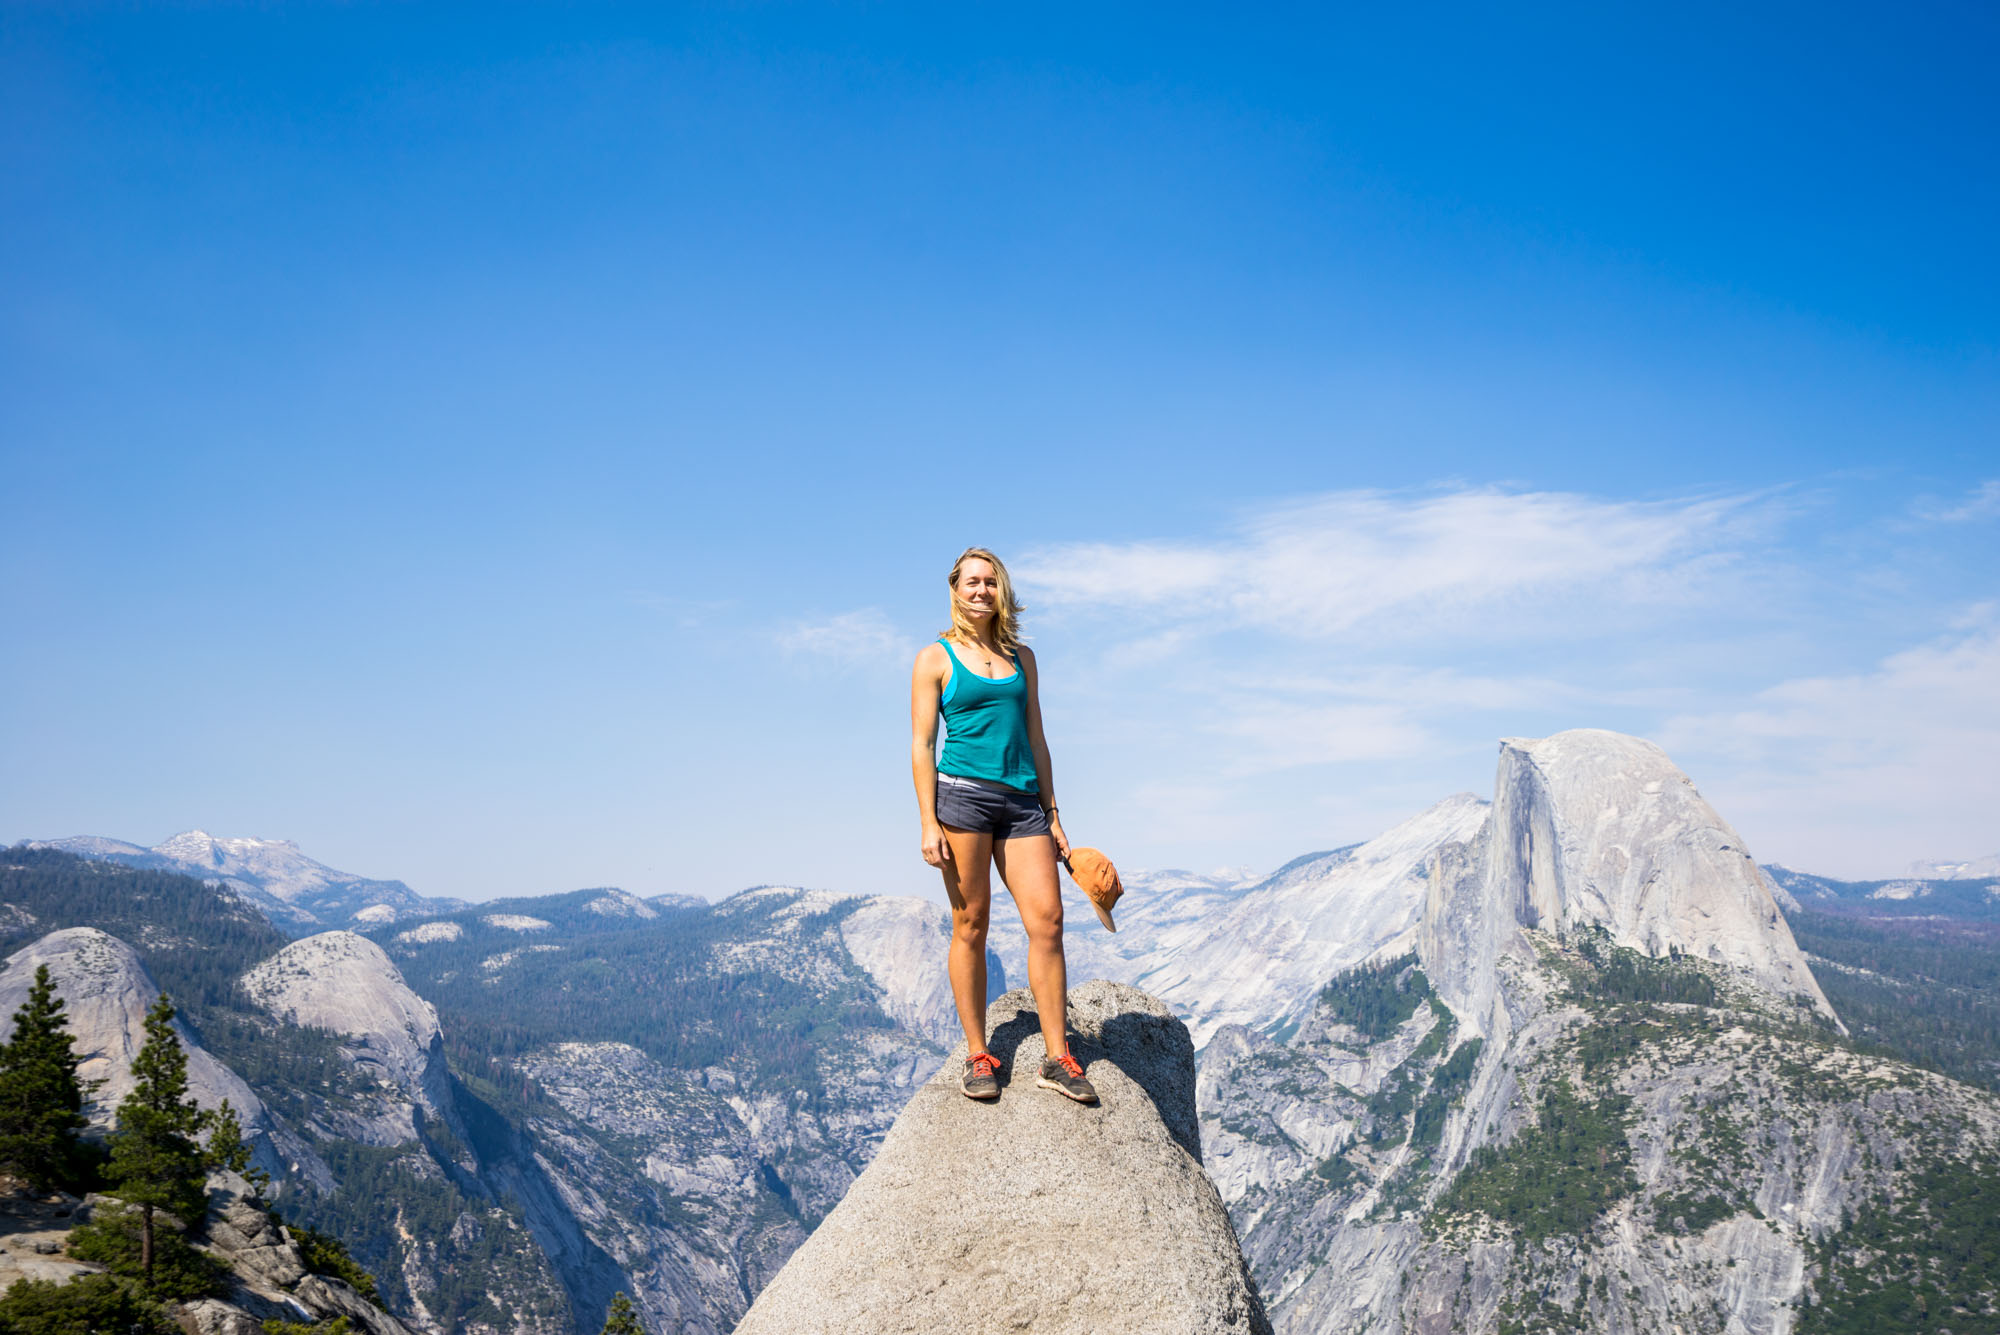 Glacier Point, Yosemite NP